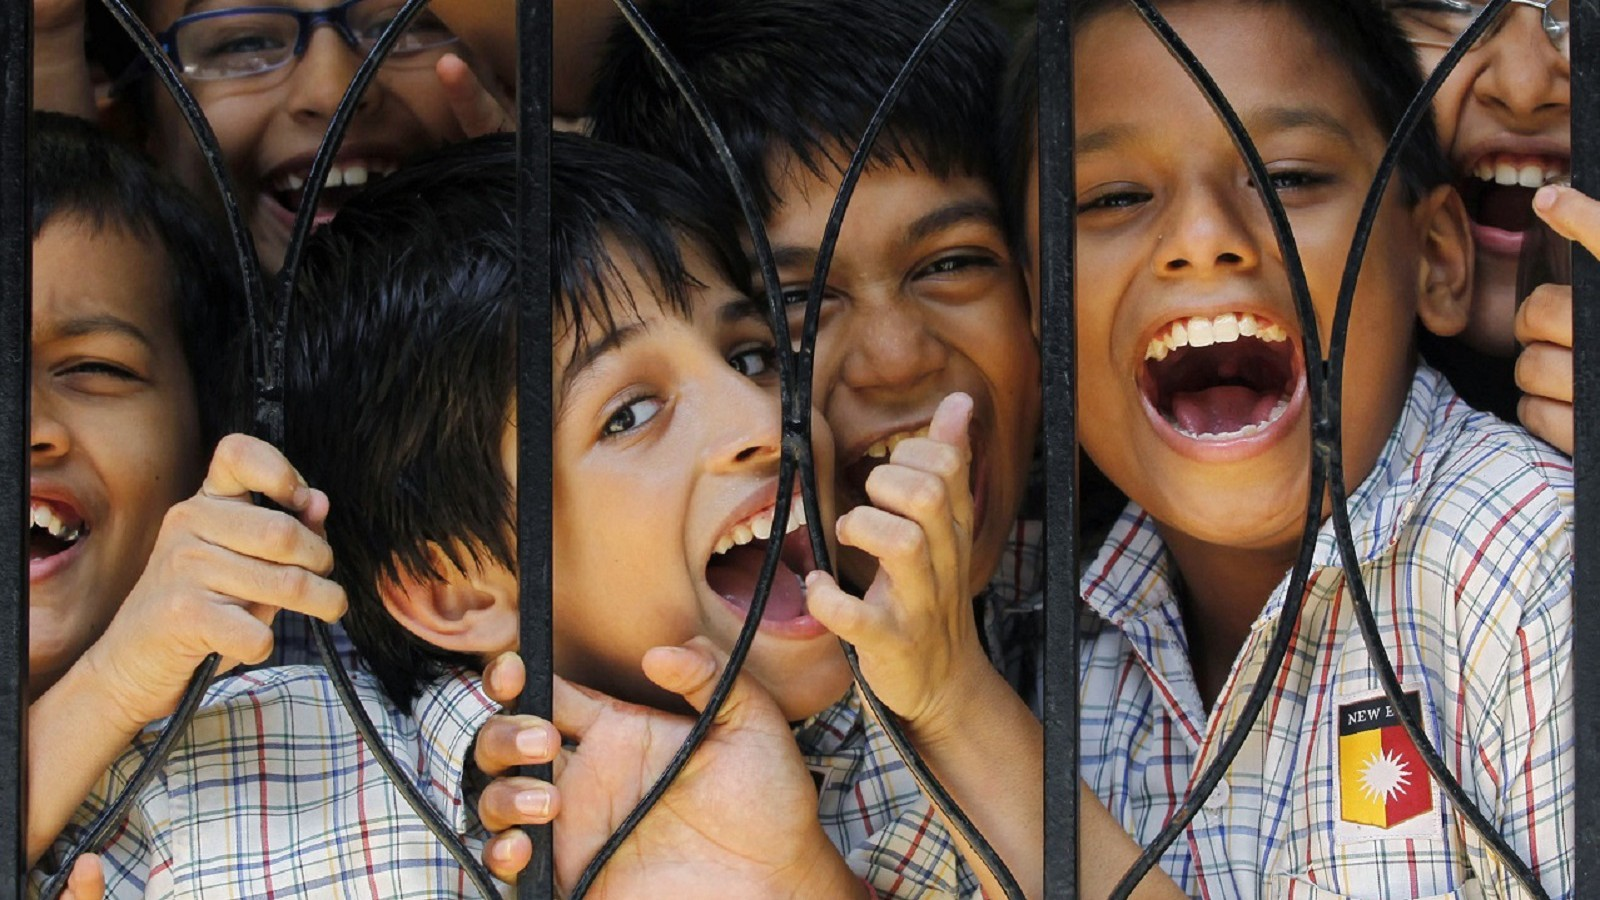 Boys react to the camera during their recess break in the middle of their academic day at a school in Mumbai August 10, 2010. The Right to Education Act that came into force has made free and compulsory education the right of every child between the age of 6 to 14 years old in India. UNESCO says the Act has brought the country closer to meeting its millennium development goals, with an estimated eight million out-of-school Indian children now having better access to education. REUTERS/Danish Siddiqui (INDIA - Tags: EDUCATION) - RTR2H7NJ